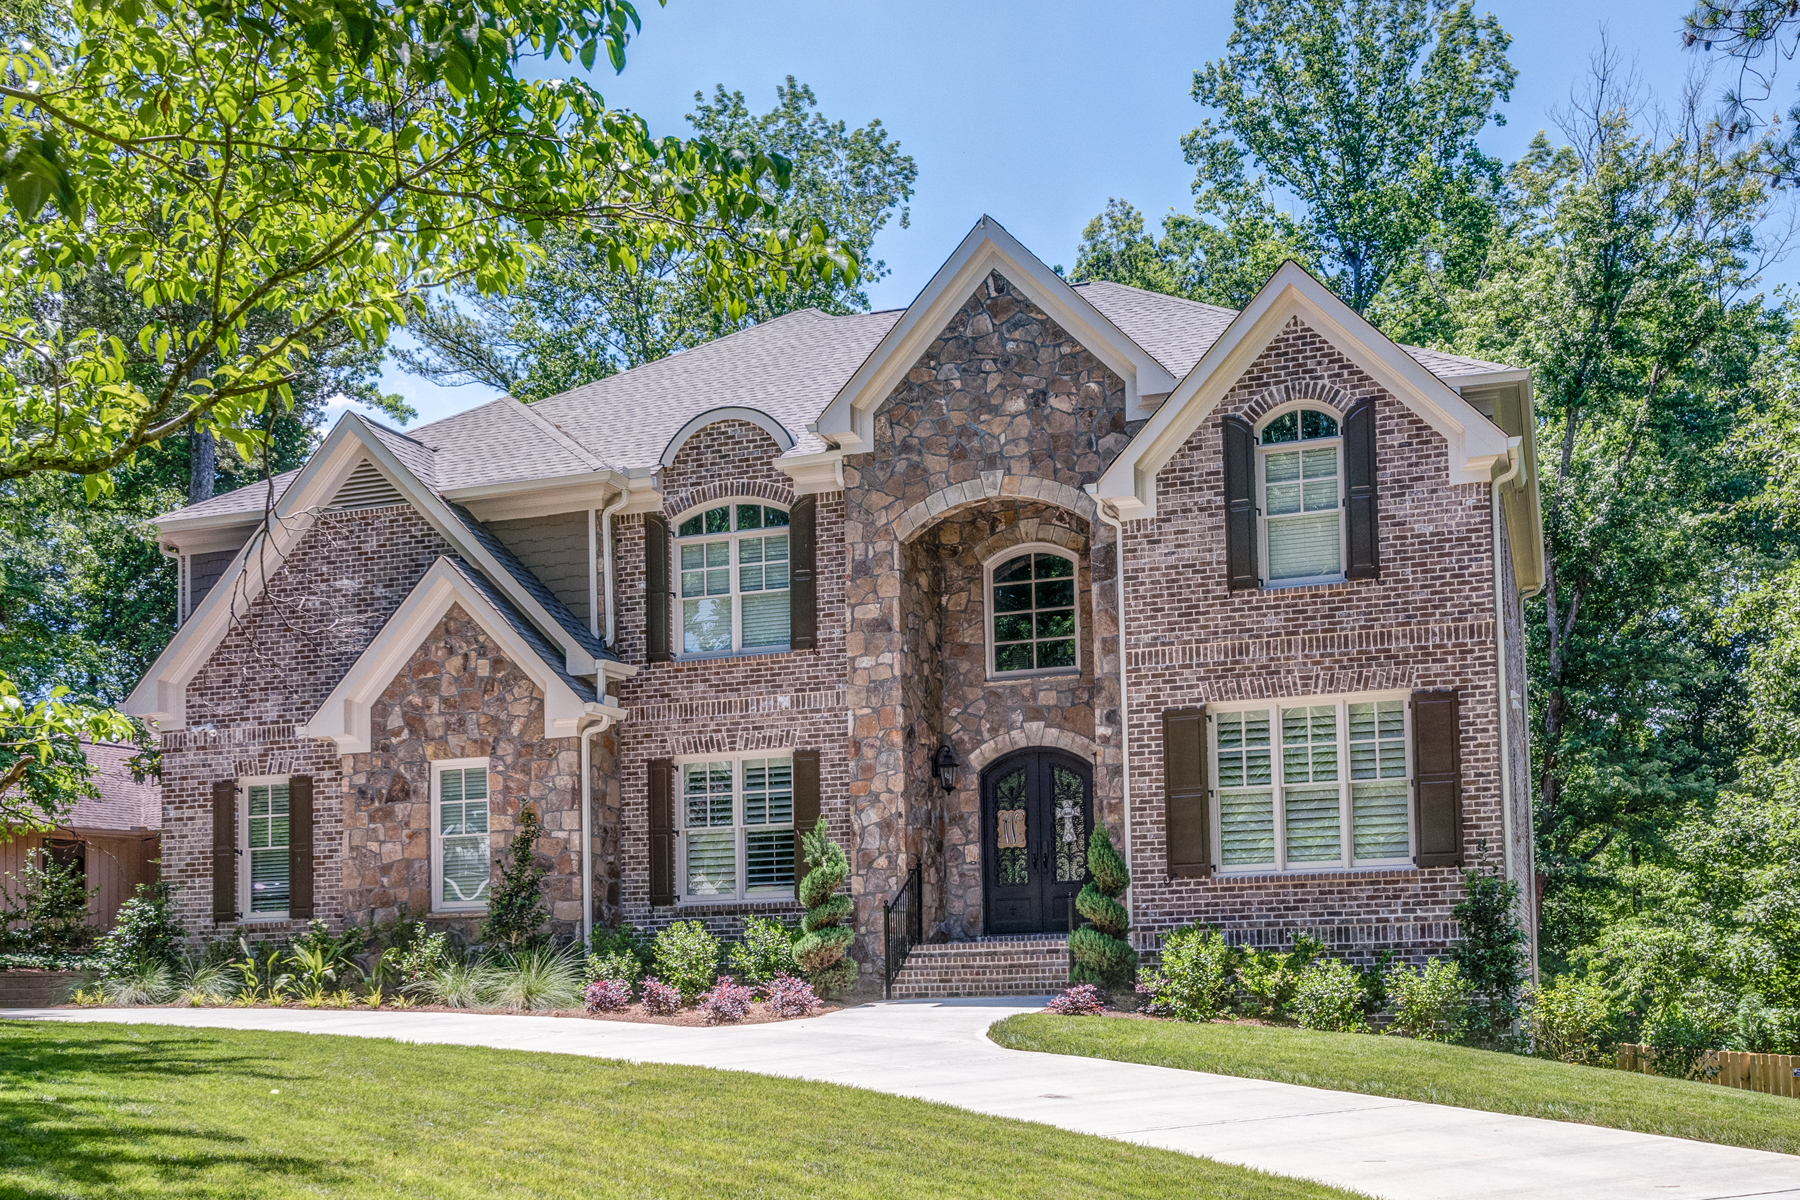 Single Family Home for Sale at New Construction Custom Home - Country Club Living 4275 Fairgreen Dr Marietta, Georgia 30068 United States